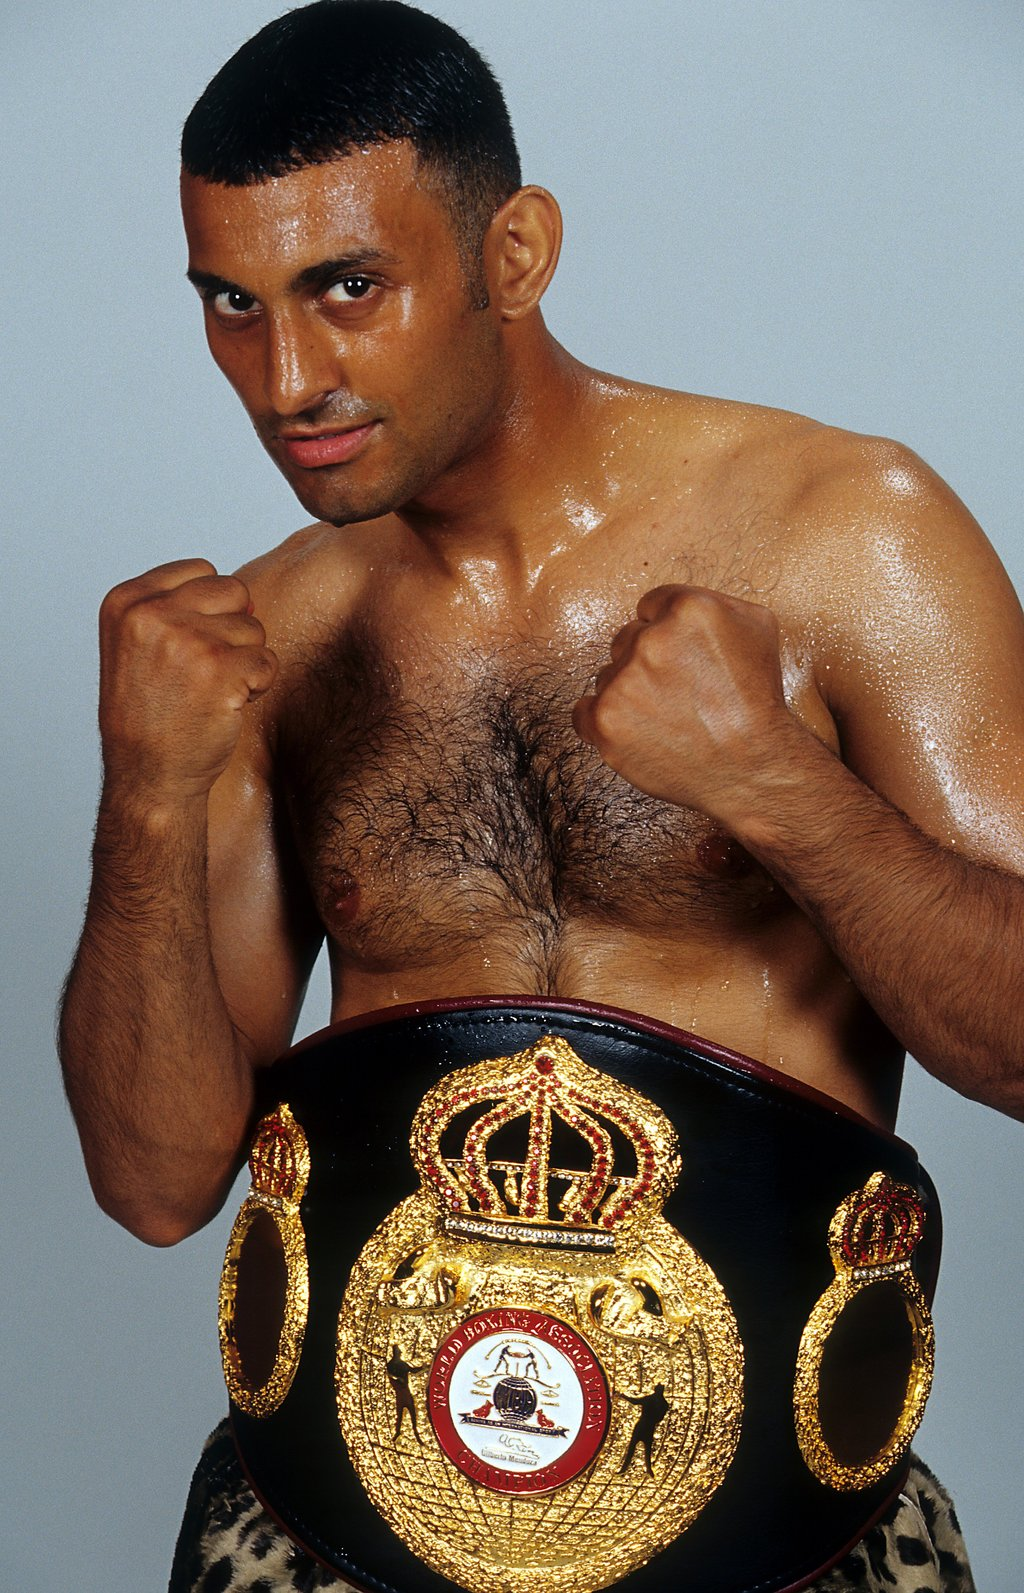 rsz gettyimages 160066361 - Prince Naseem Hamed awarded Ring Magazine featherweight belt, history in the making